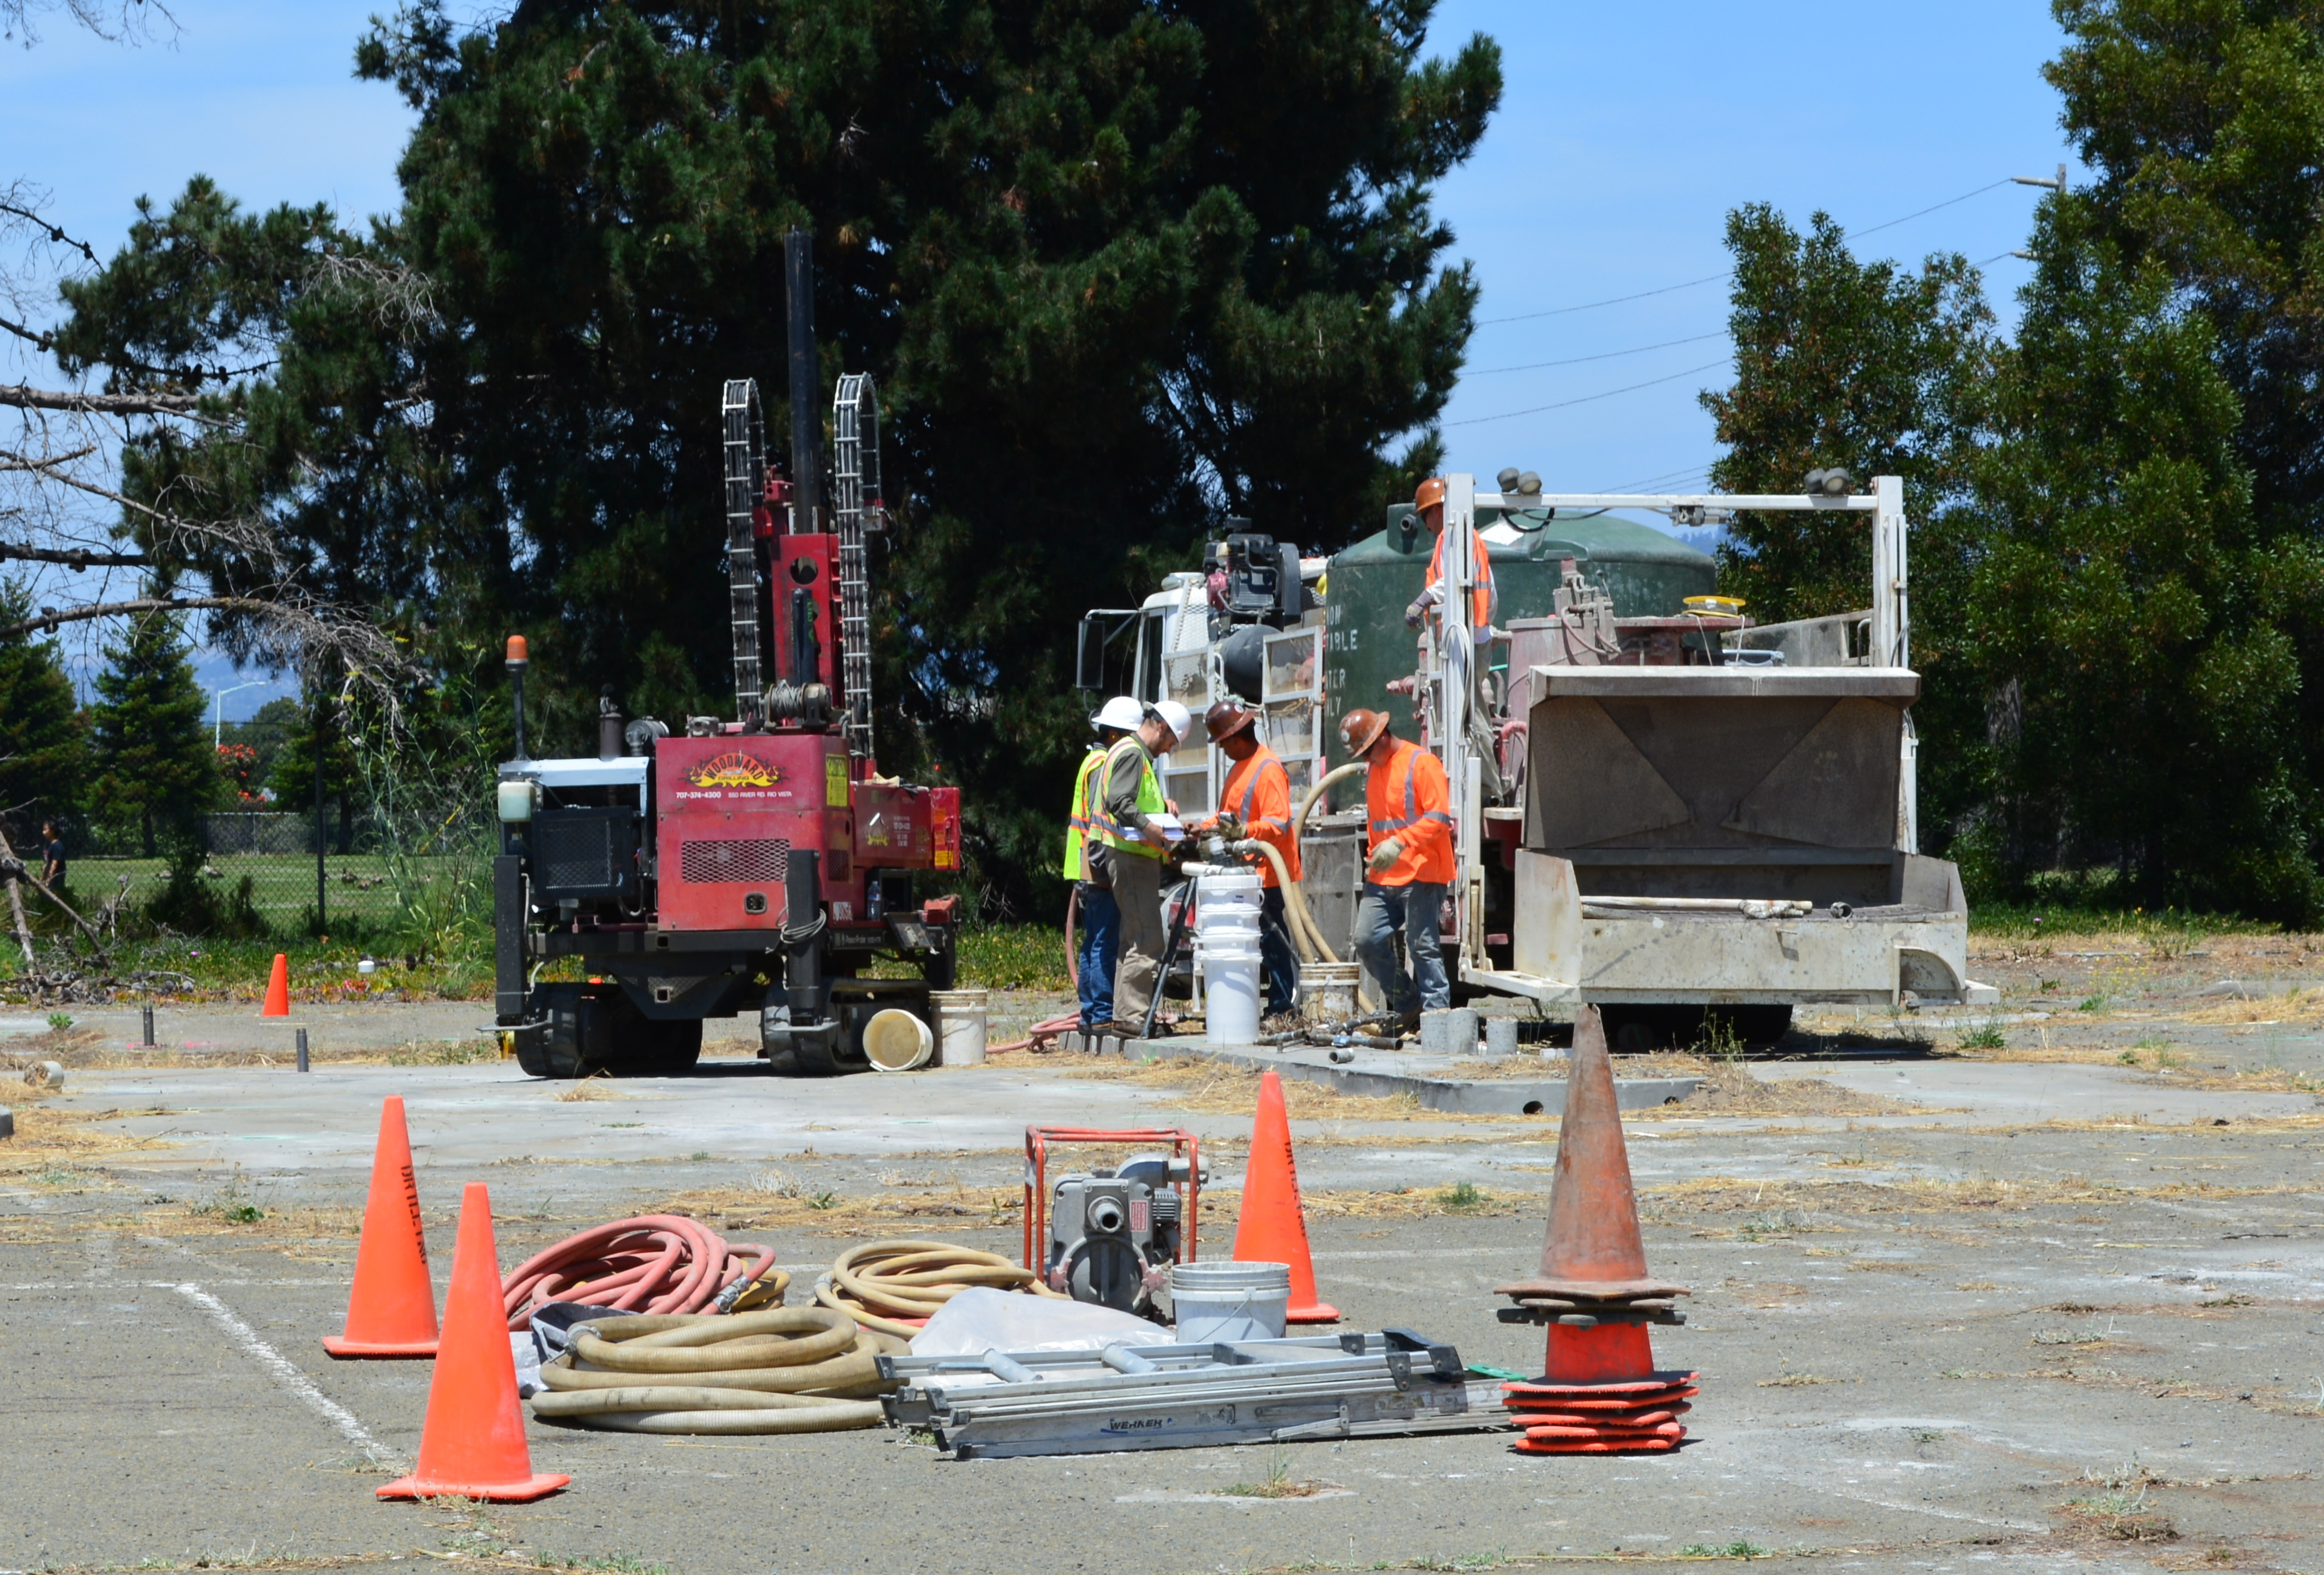 Workers at the old gas station and car wash site on West Pacific Avenue on July 13, 2015 preparing to inject cleanup solutions into the ground. The Navy operated a gas station and car wash on the site from 1971 to 1980. Green tank on truck contains non-potable water for on-site mixing of treatment solution. Soccer field is in the background.